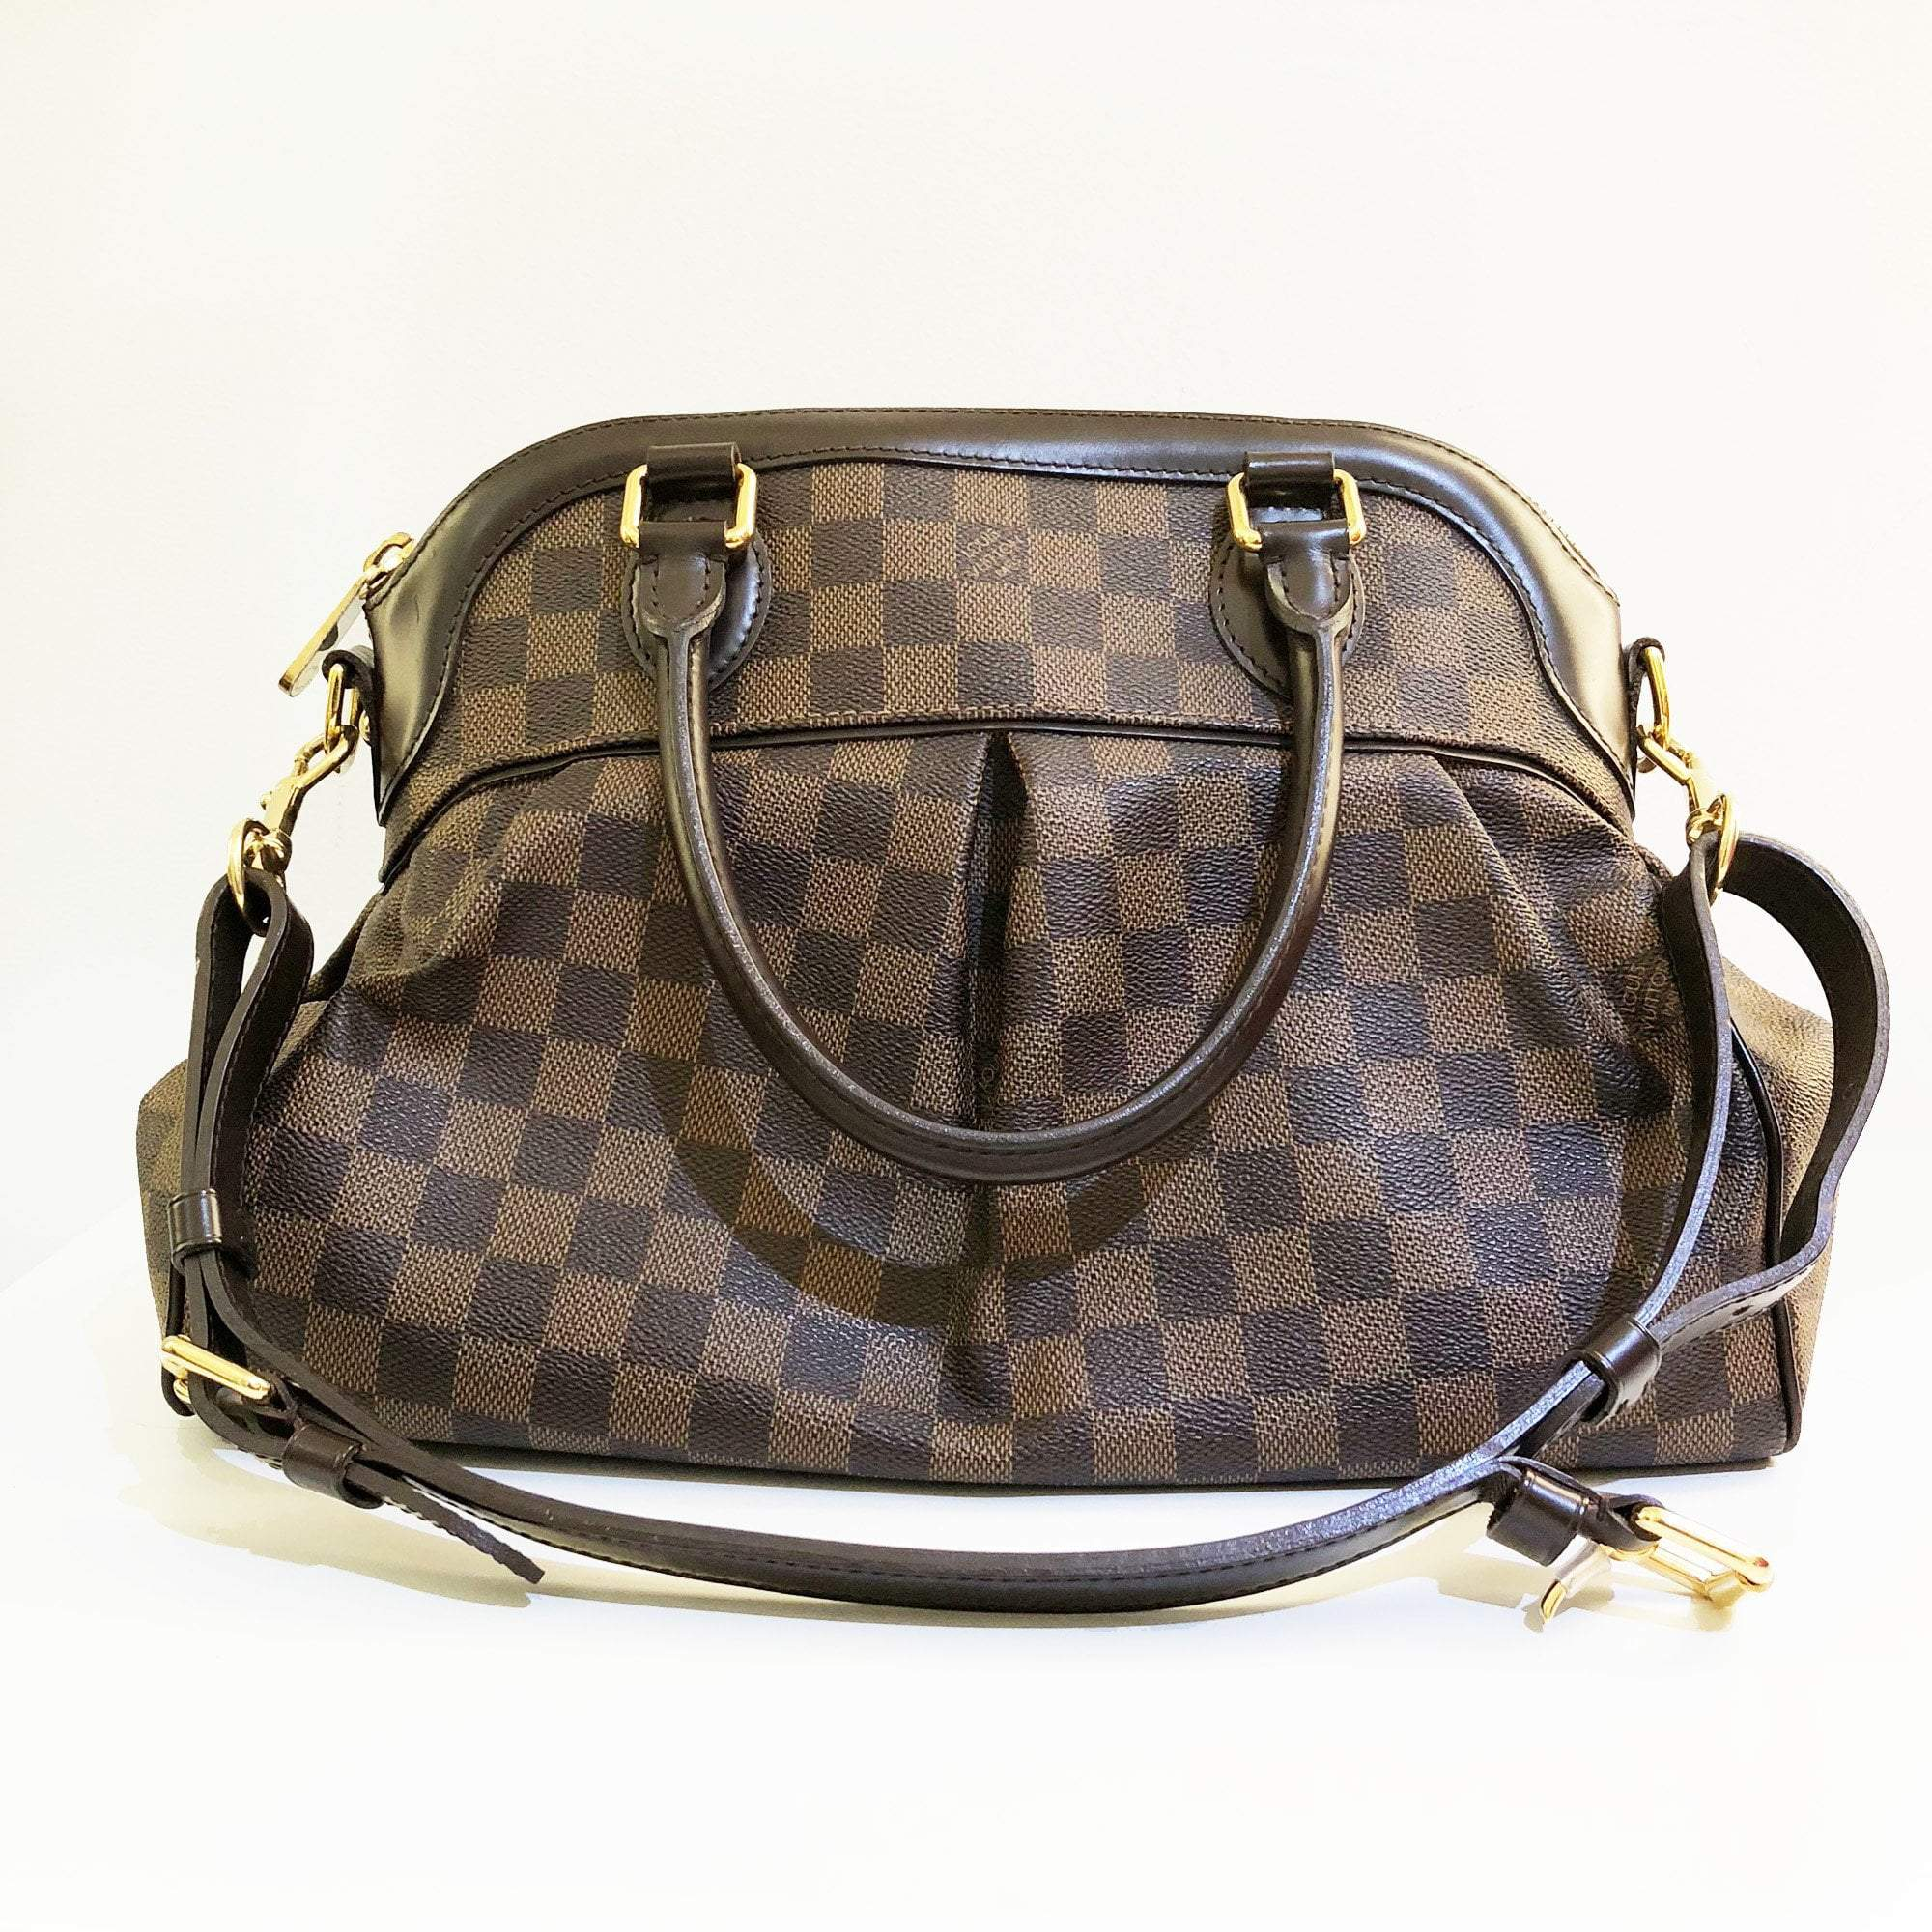 Louis Vuitton Damier Ebene Canvas Trevi MM Bag